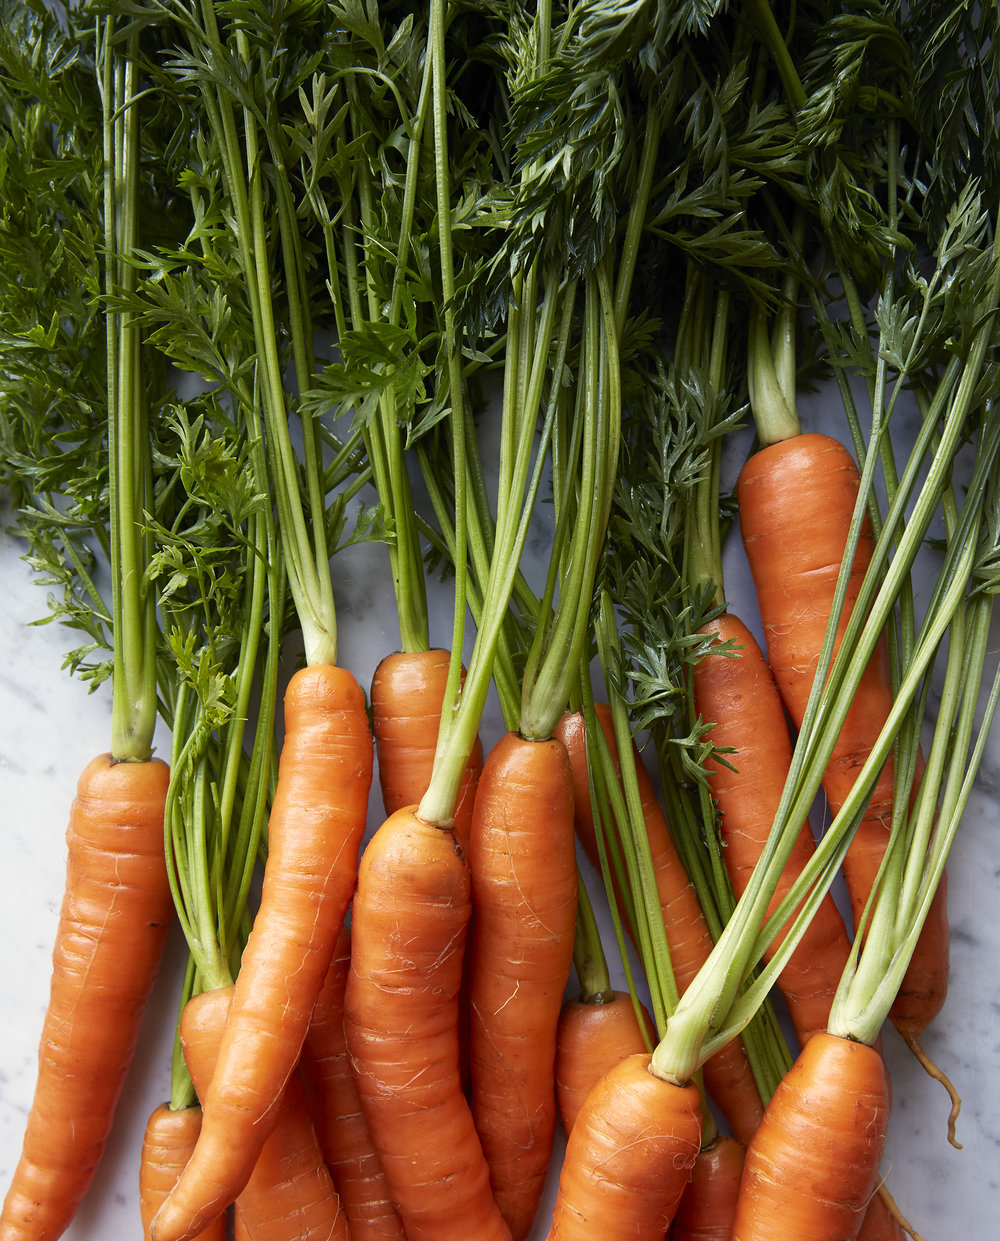 Burggraaf_Charity-Seattle_Food_Photographer-Carrots.jpg